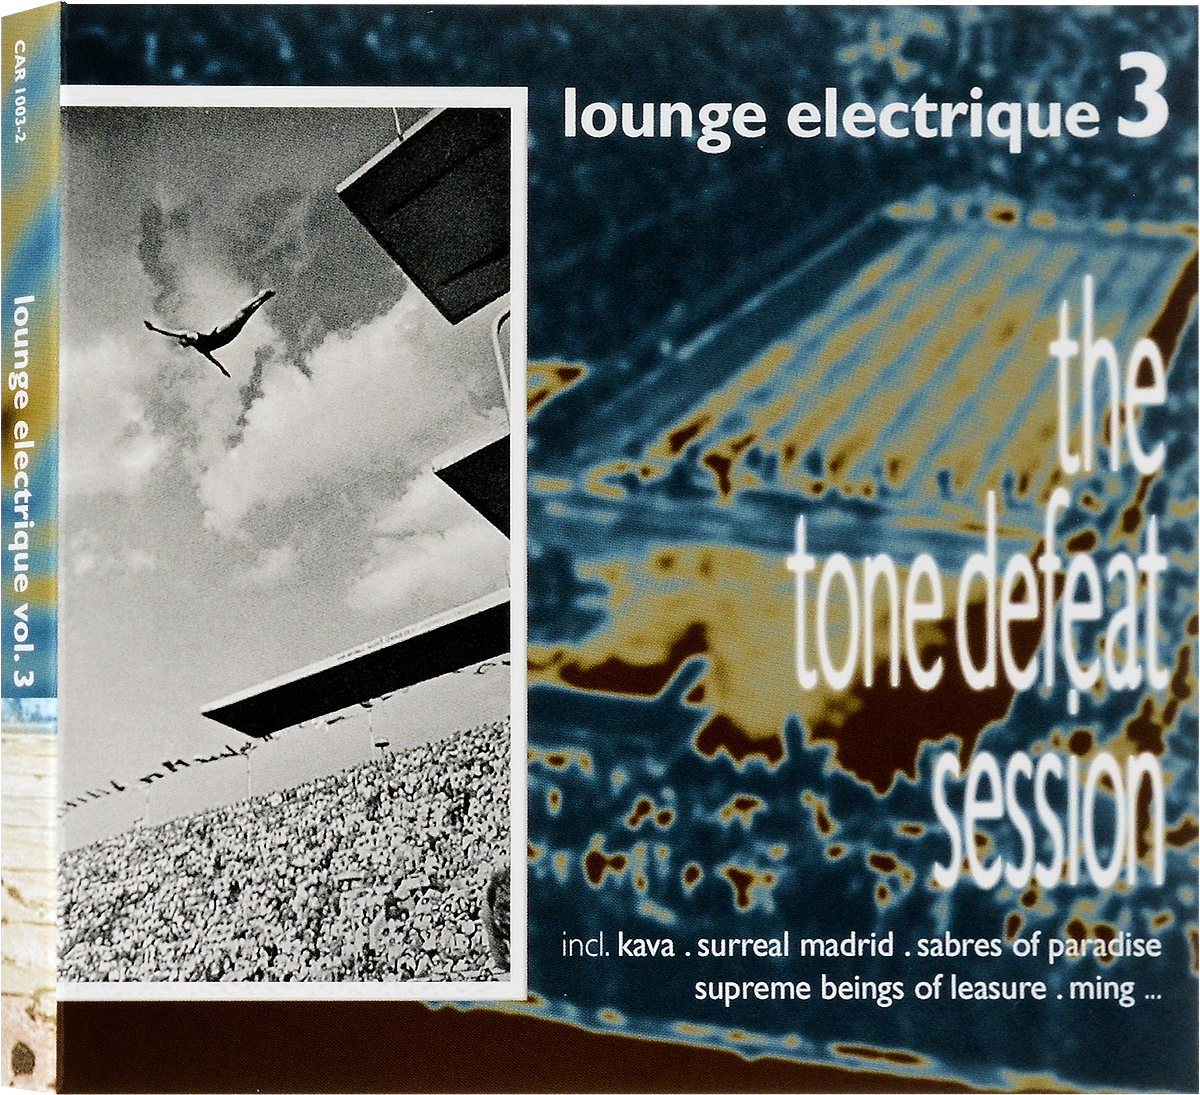 Wax Poetric,Liquid Loop,Marzenka,Org Lounge,Eastenders,Sabred Of Paradise,Doing Time,Surreal Madrid,Kava Kava,Ming Lounge Electrique. Vol. 3 кресло classical ming ming and qing furniture